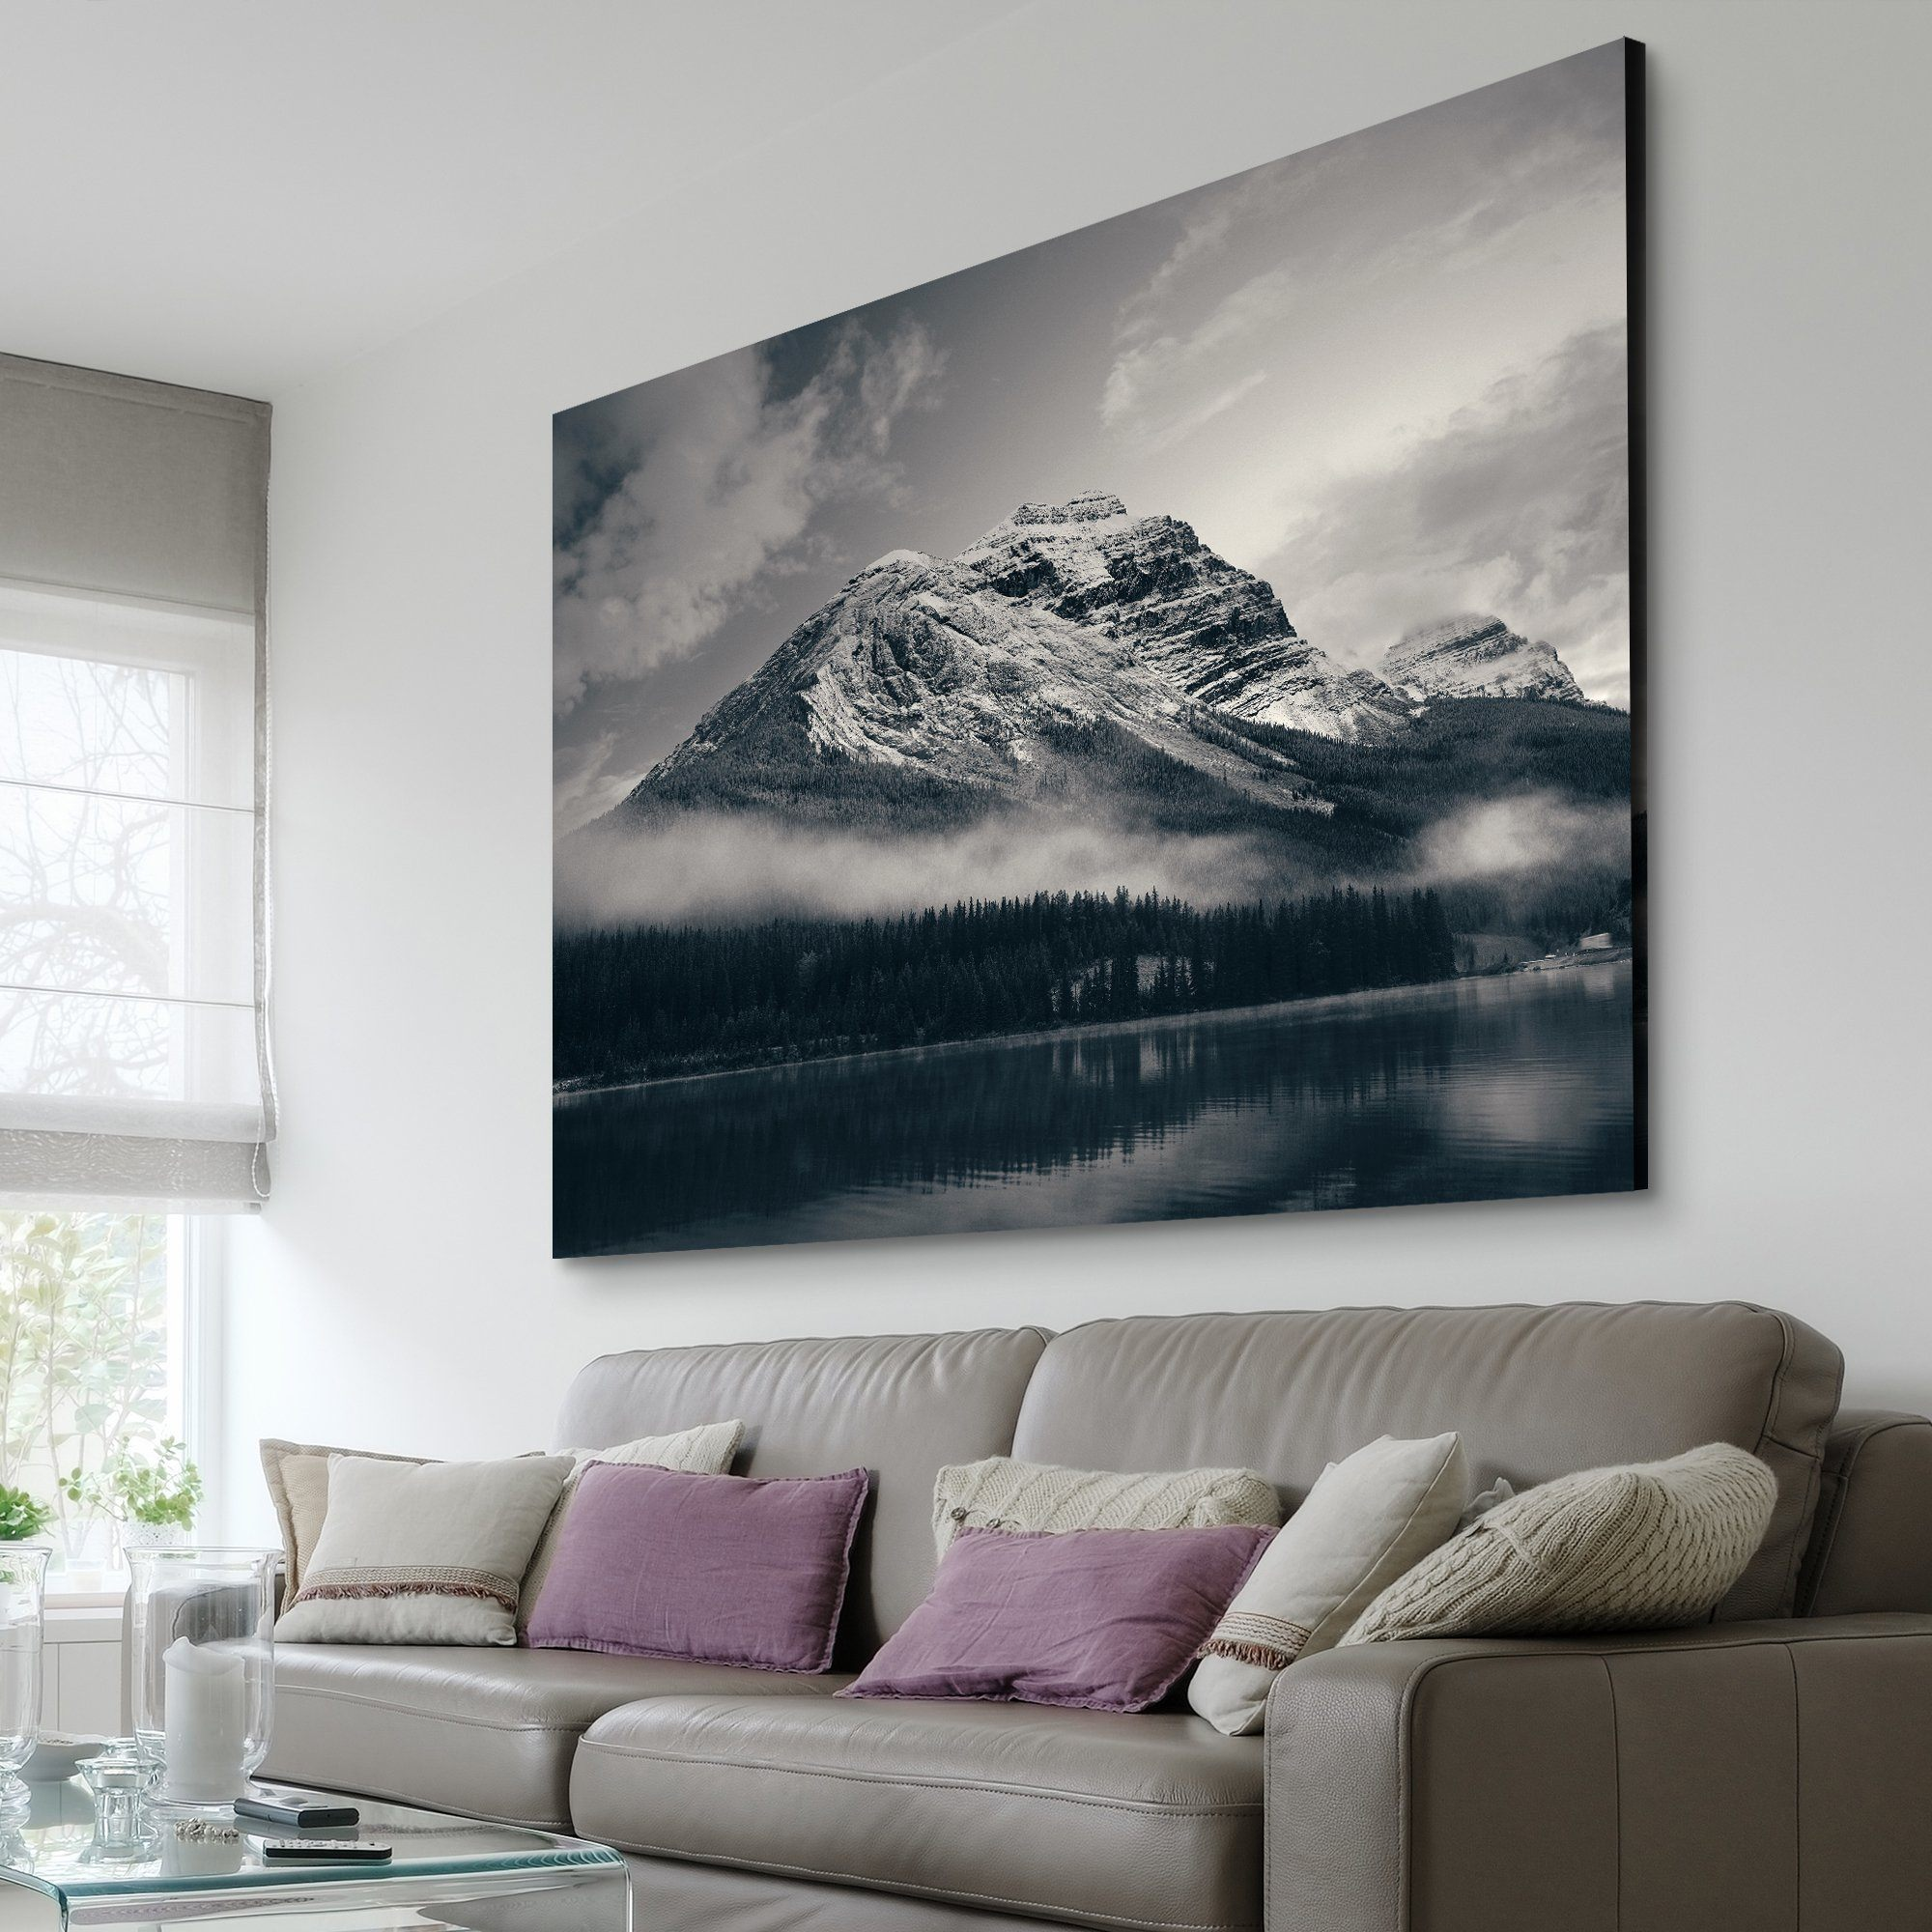 Banff National Park Living room wall art